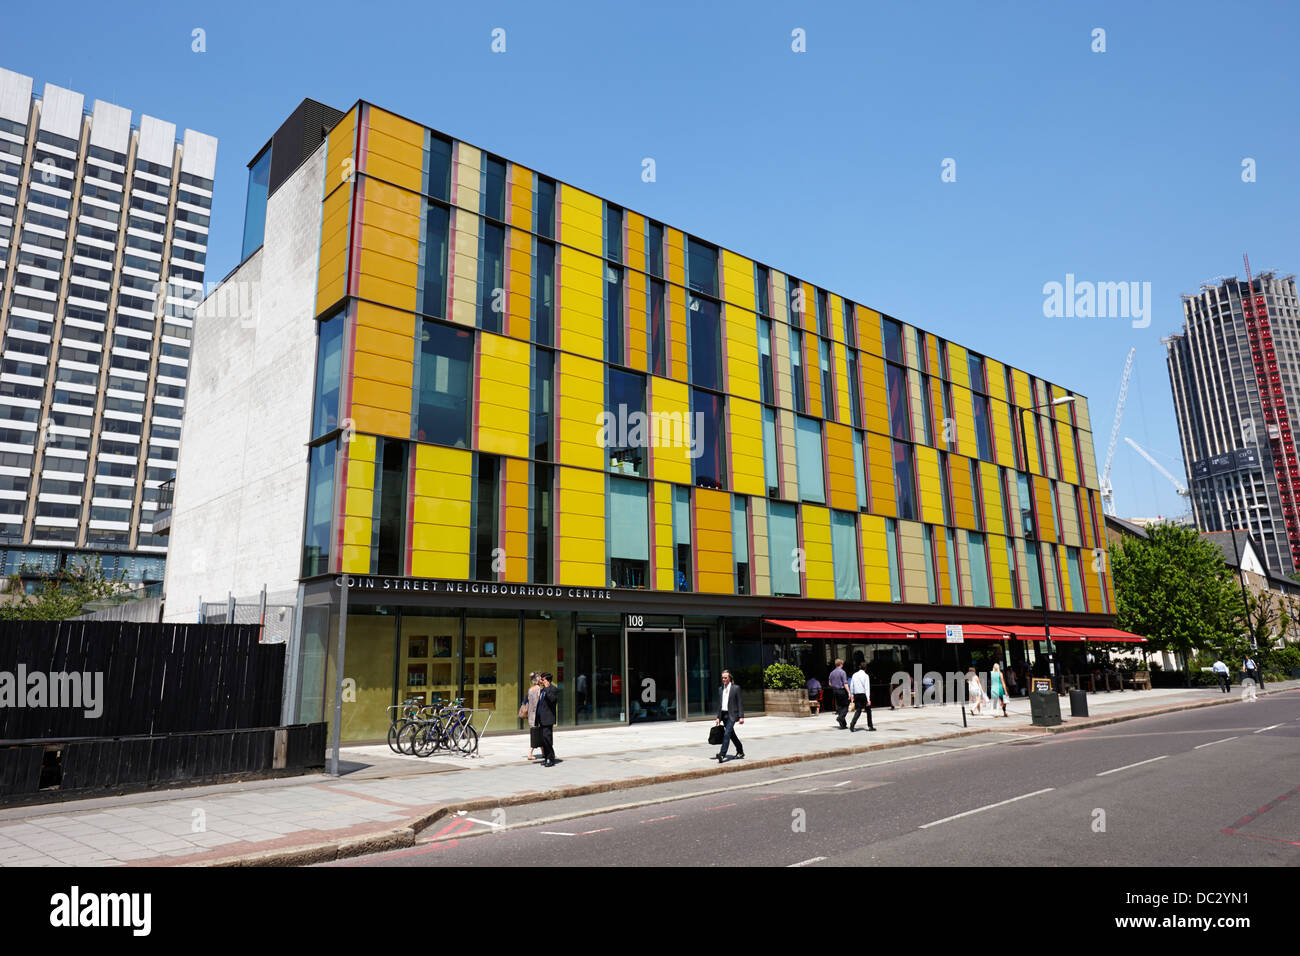 coin street neighbourhood centre London England UK - Stock Image